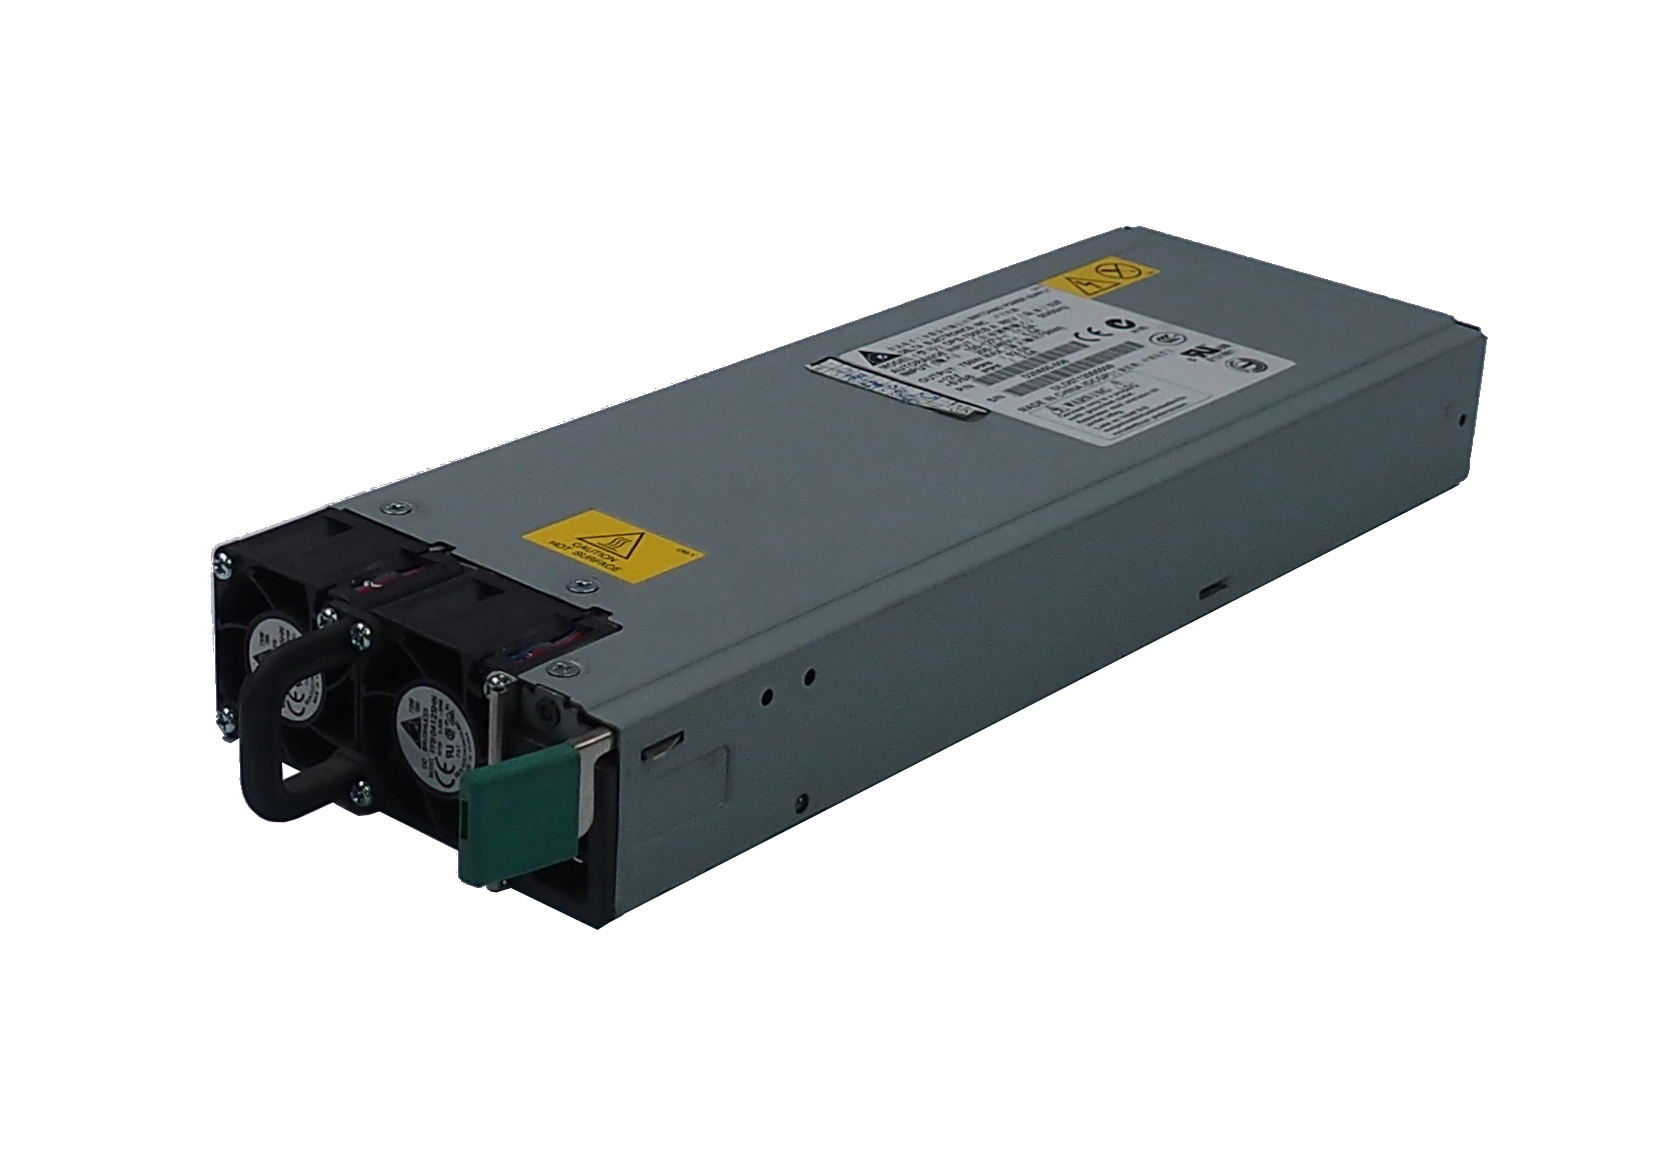 Intel D20850-006 DPS-750EB A 750W Switching Power Supply For Server